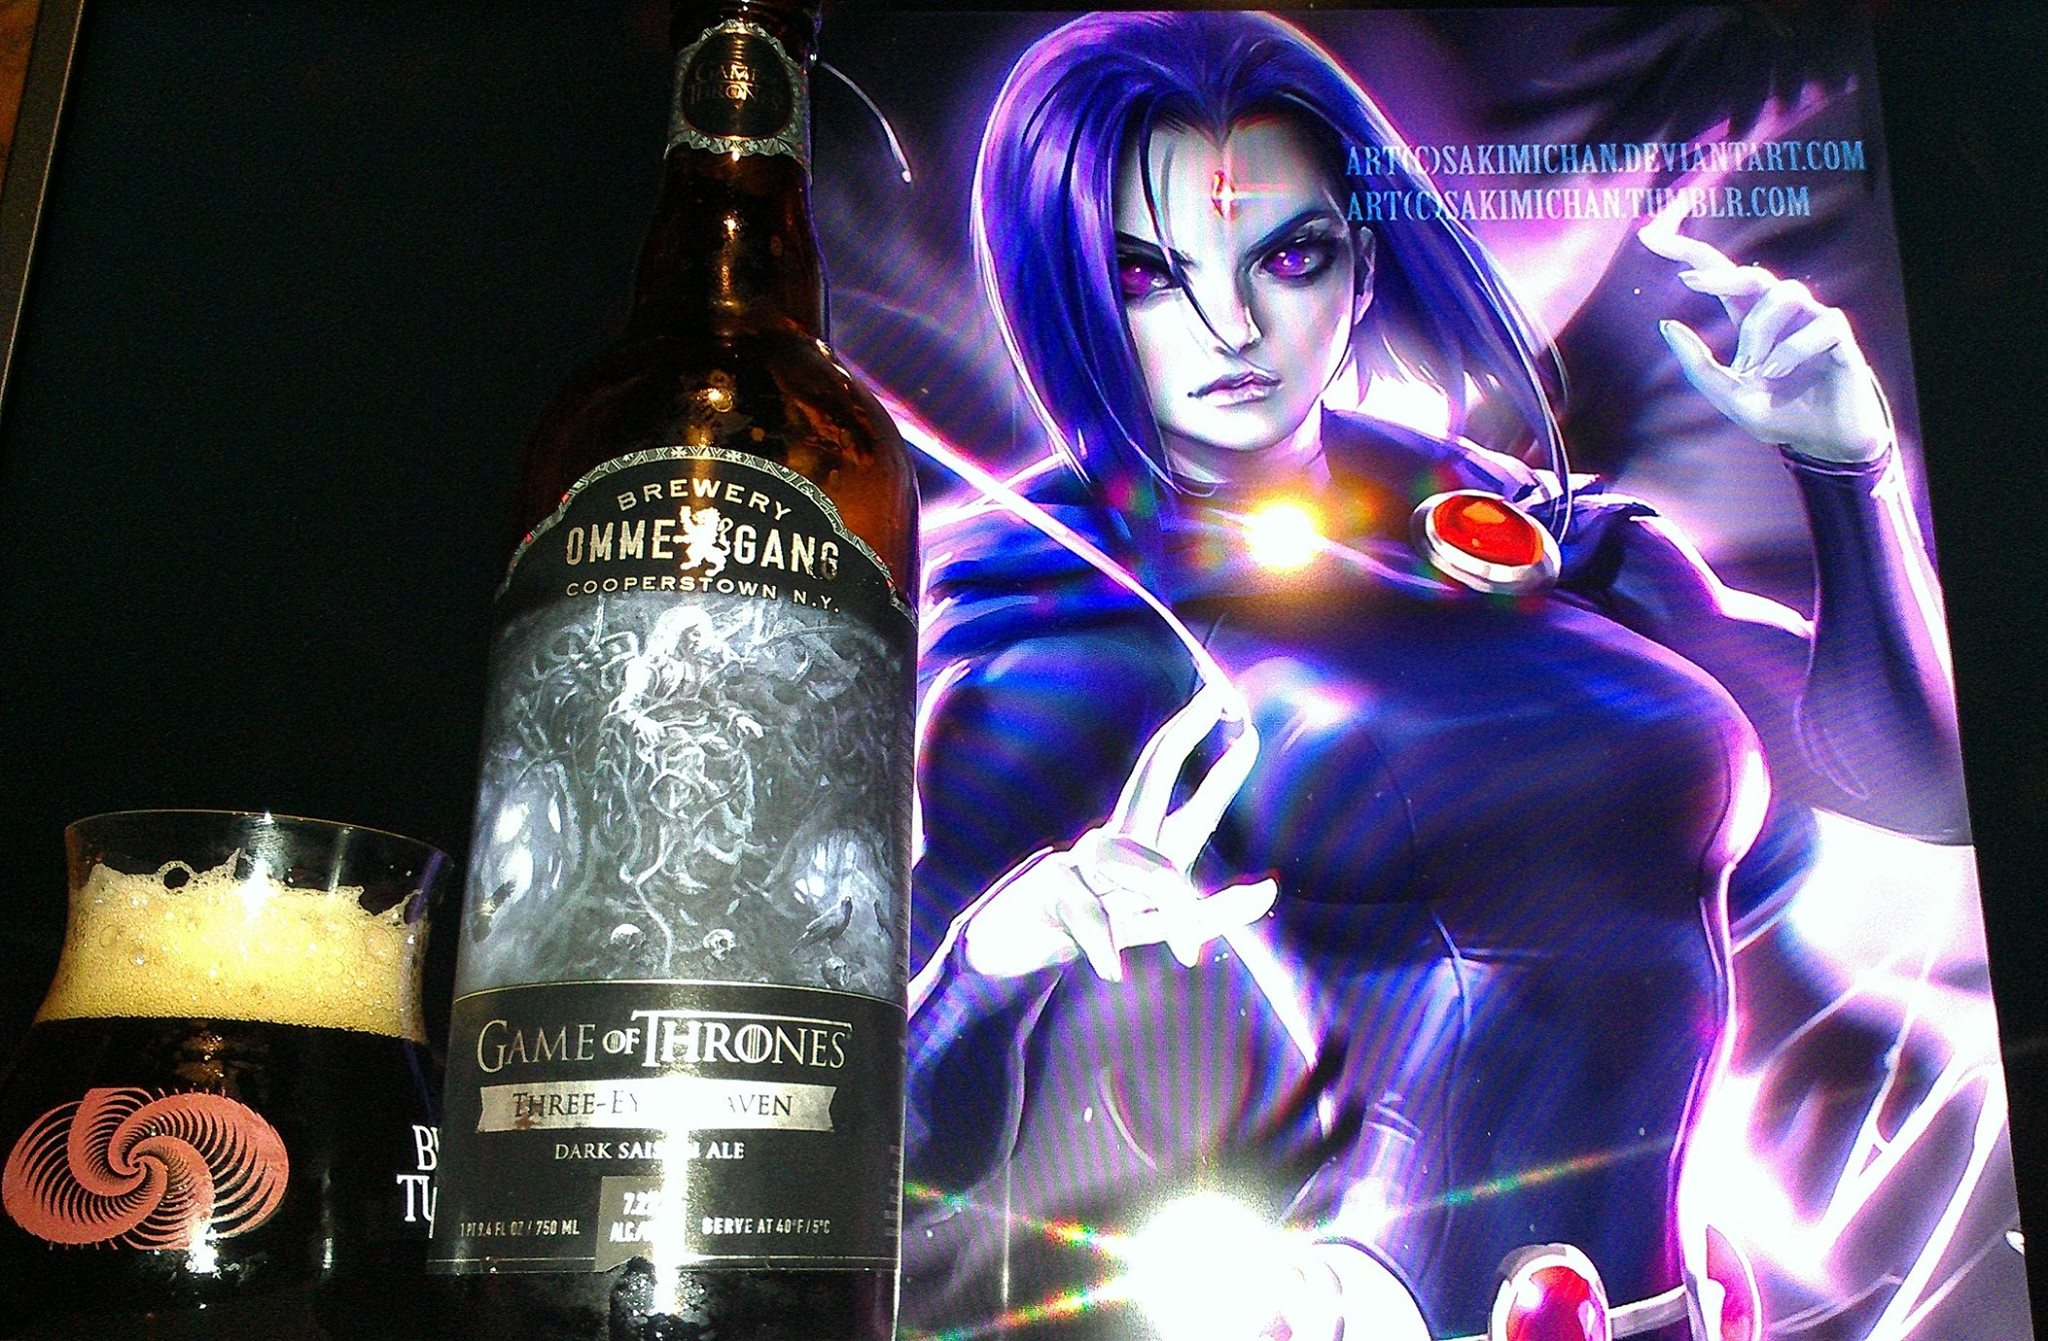 Teen Titans  Brewerianimelogs Anime And Beer Lore-7059